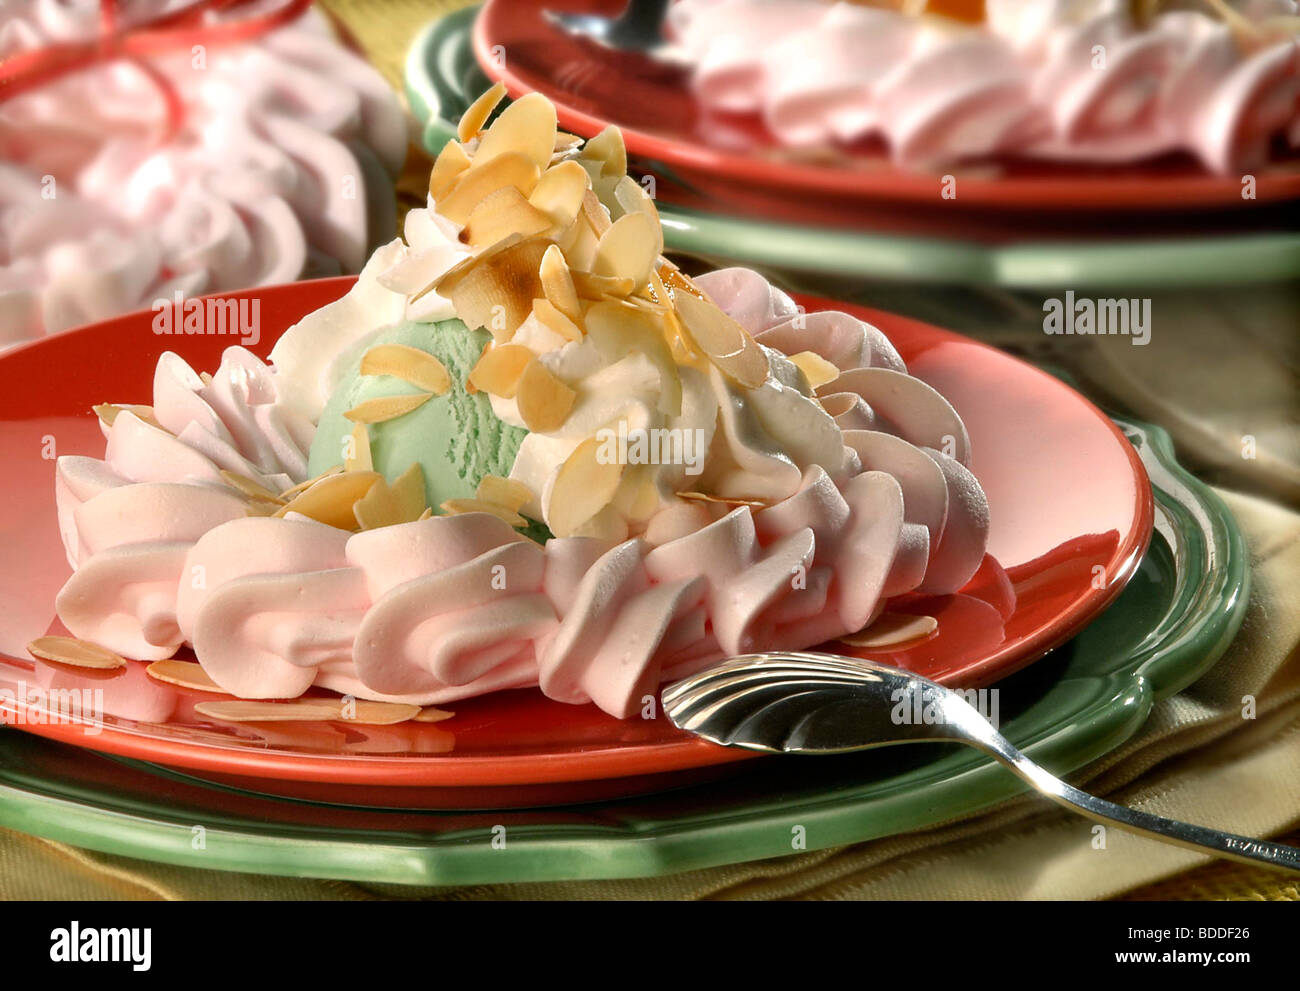 Peach Dessert with Ice Cream - Stock Image